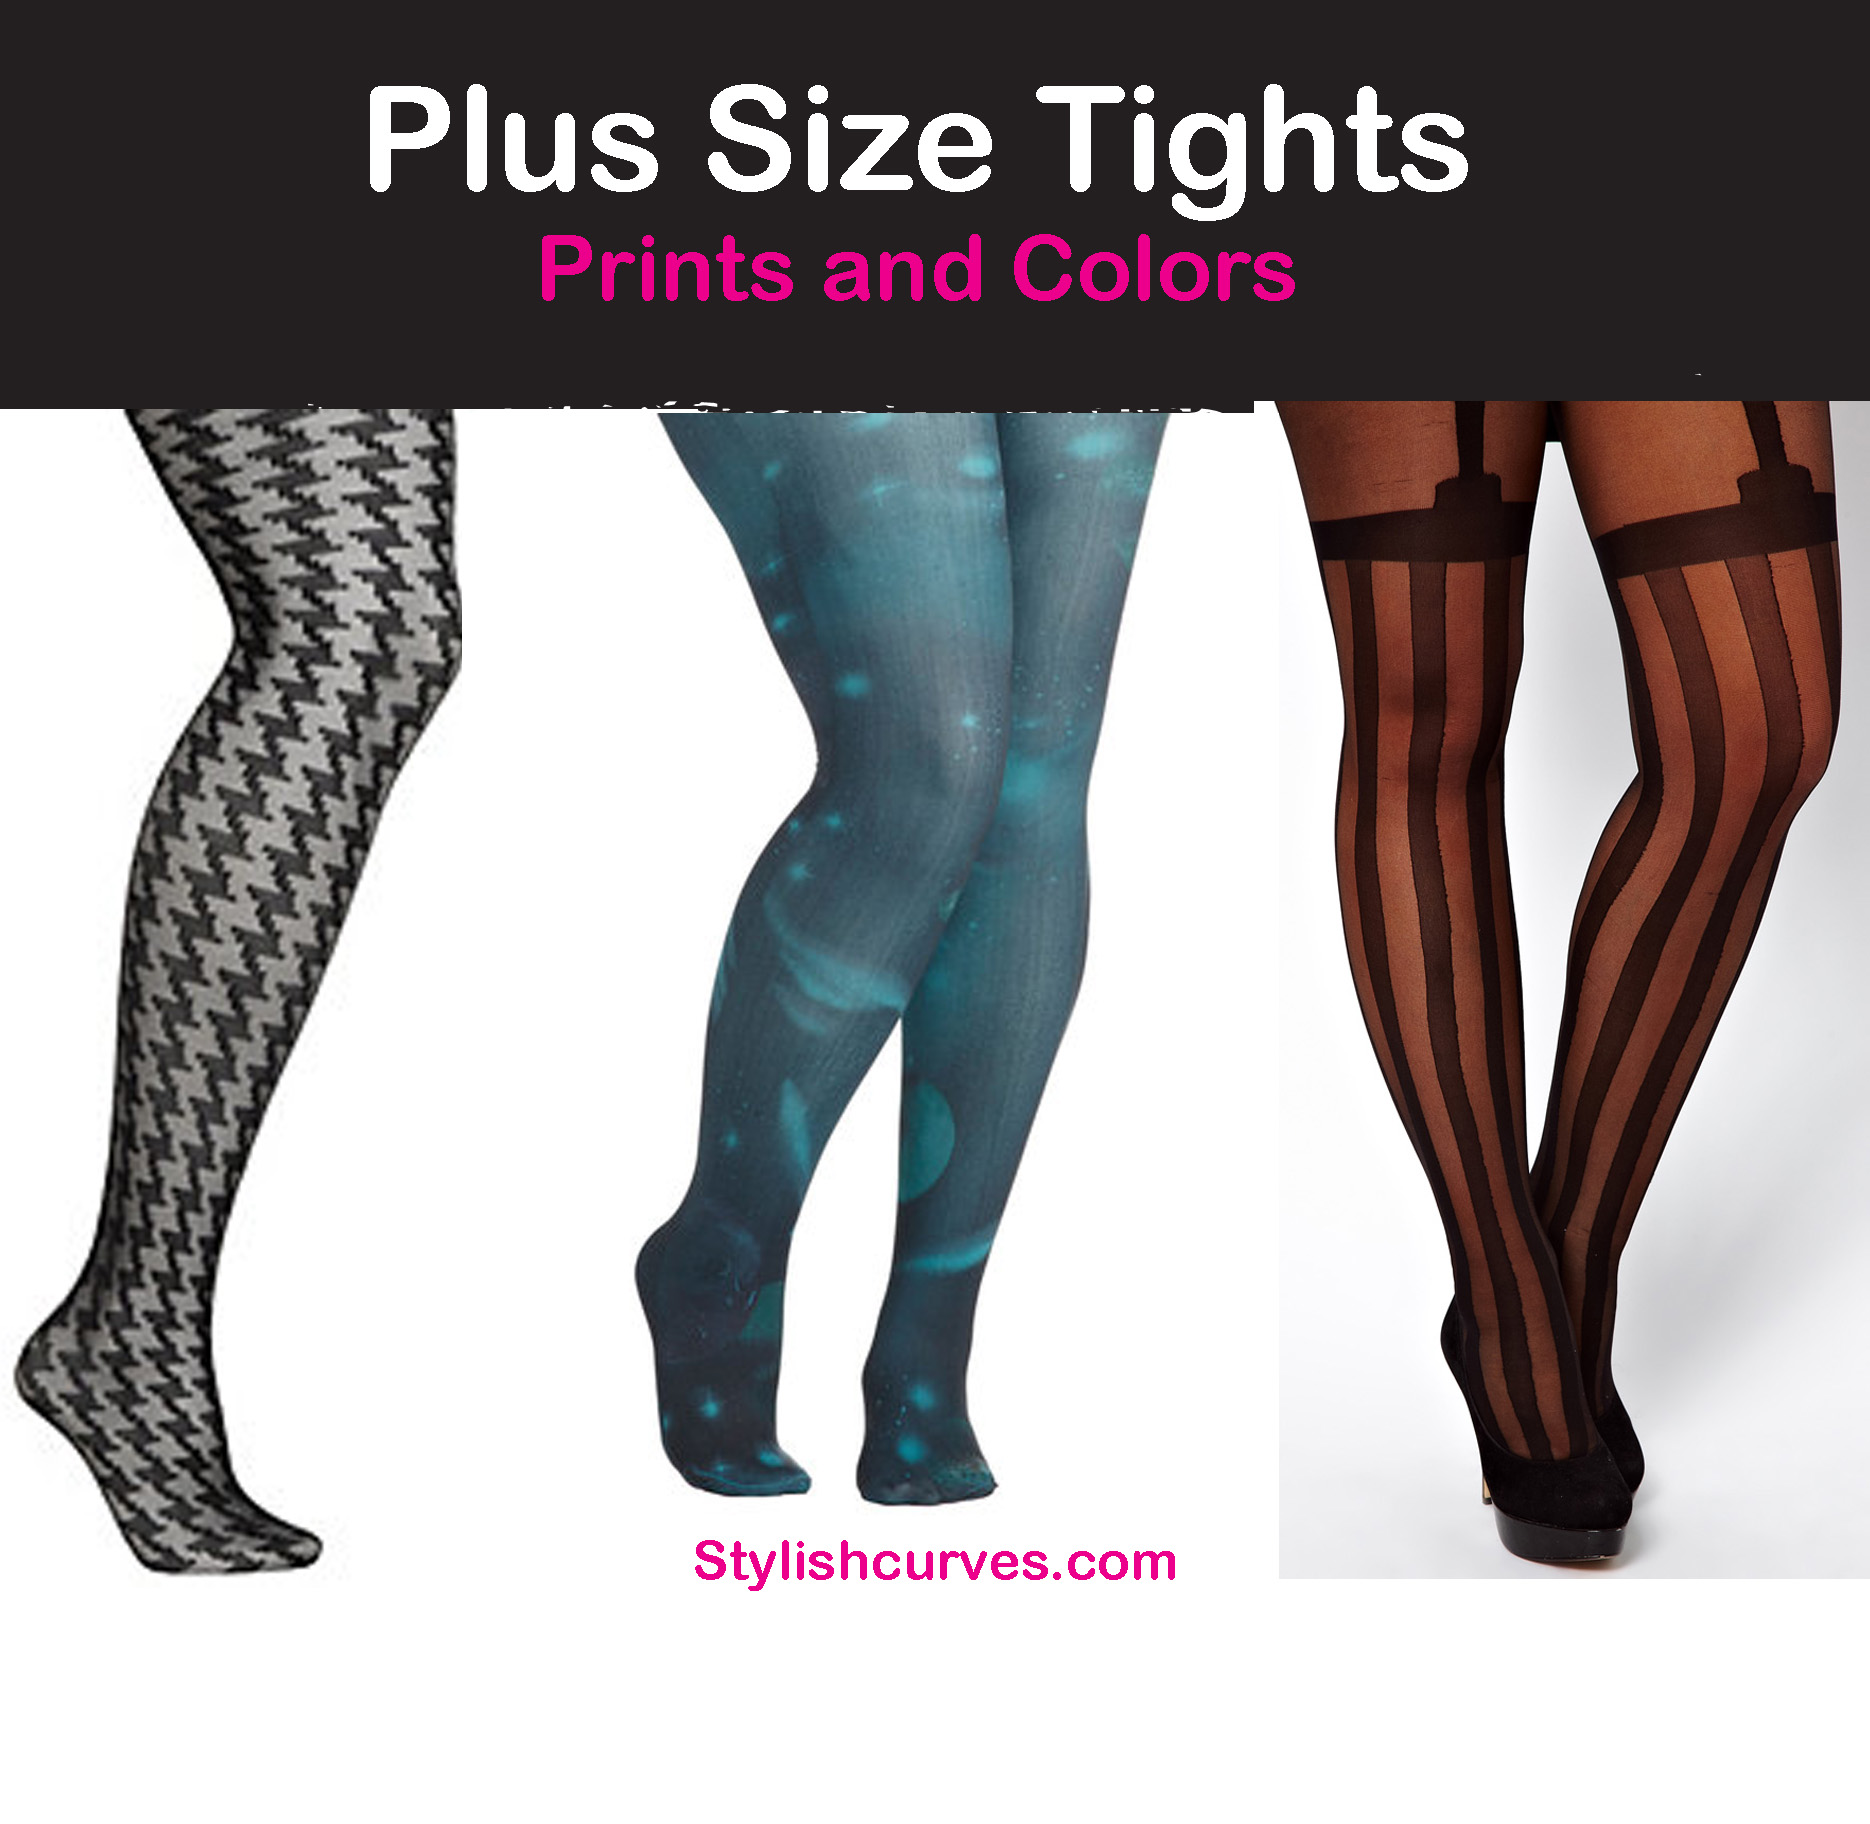 407a82e35fa88 SHOPPING: PLUS SIZE TIGHTS, PRINTS, AND COLORS | Stylish Curves